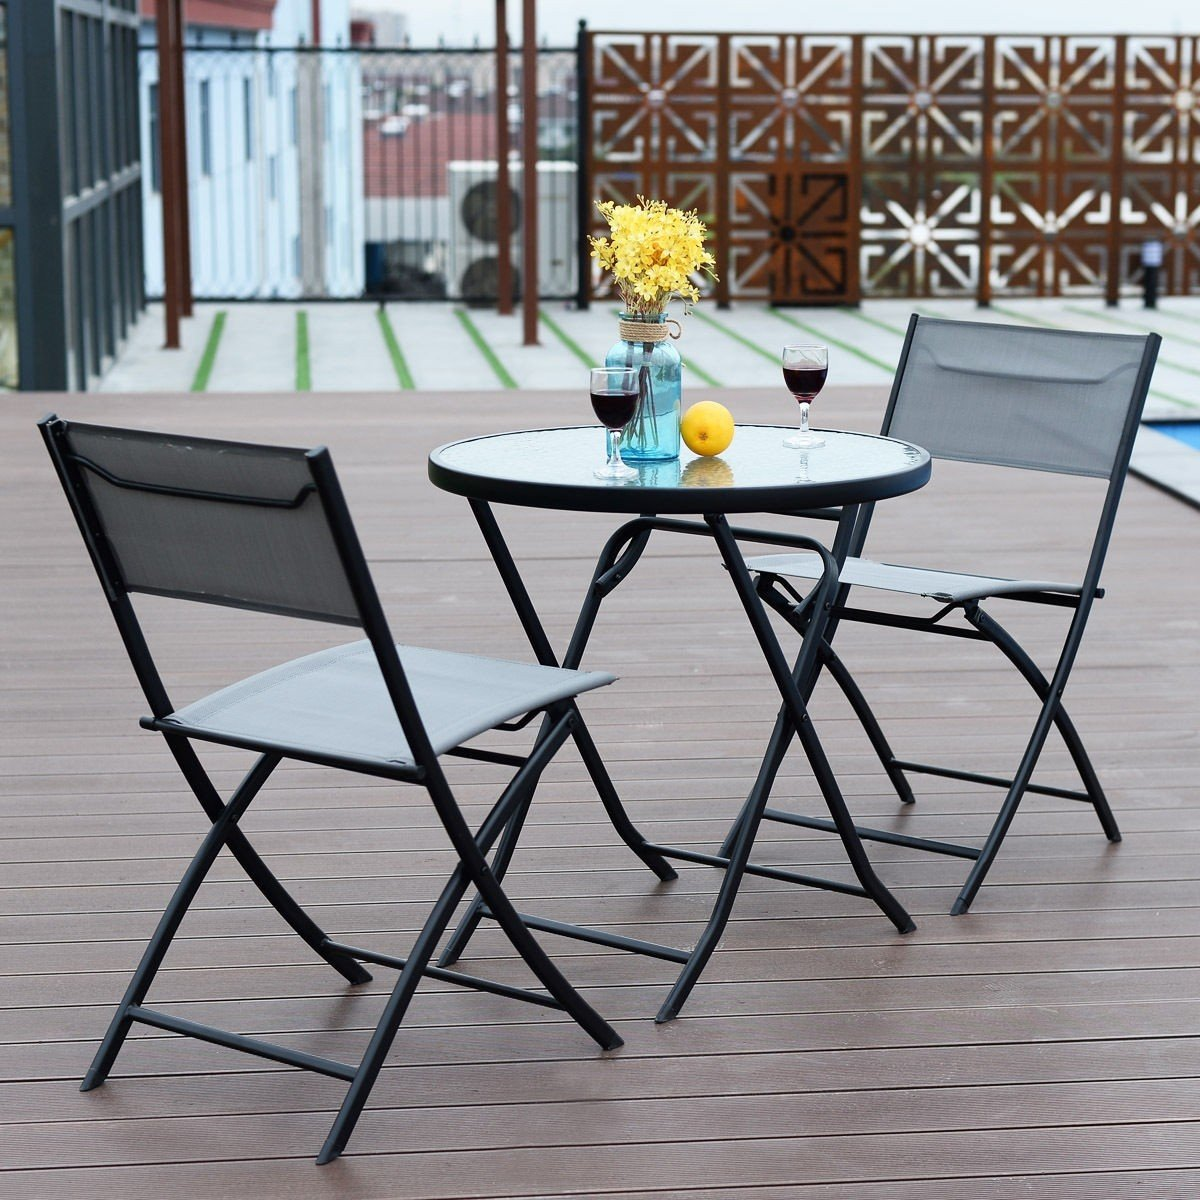 Foldable Table And Chair Set.Gray 3 Piece Patio Folding Table And Chair Set